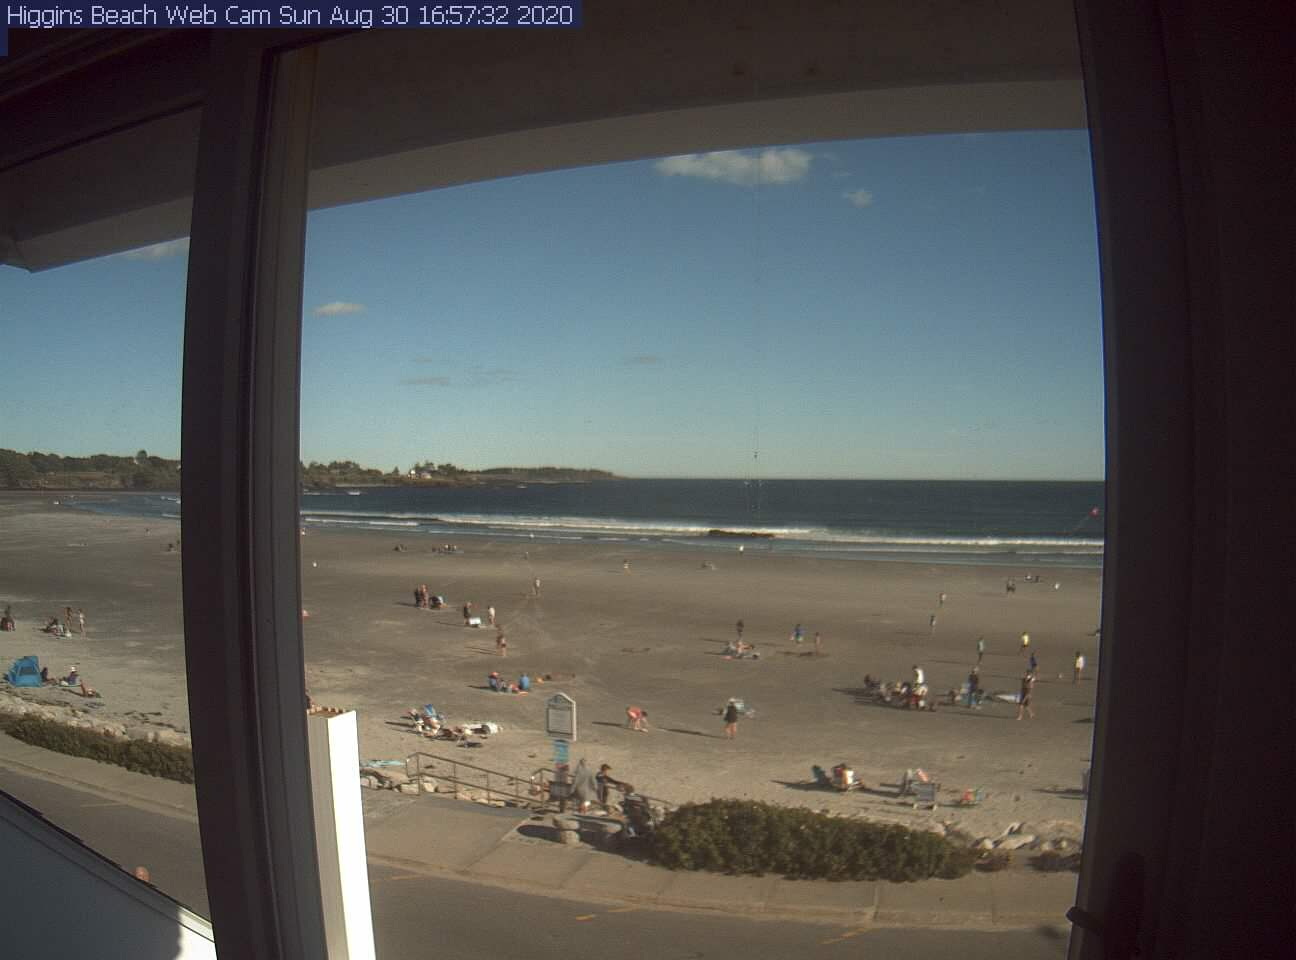 Higgins Beach Webcam Image